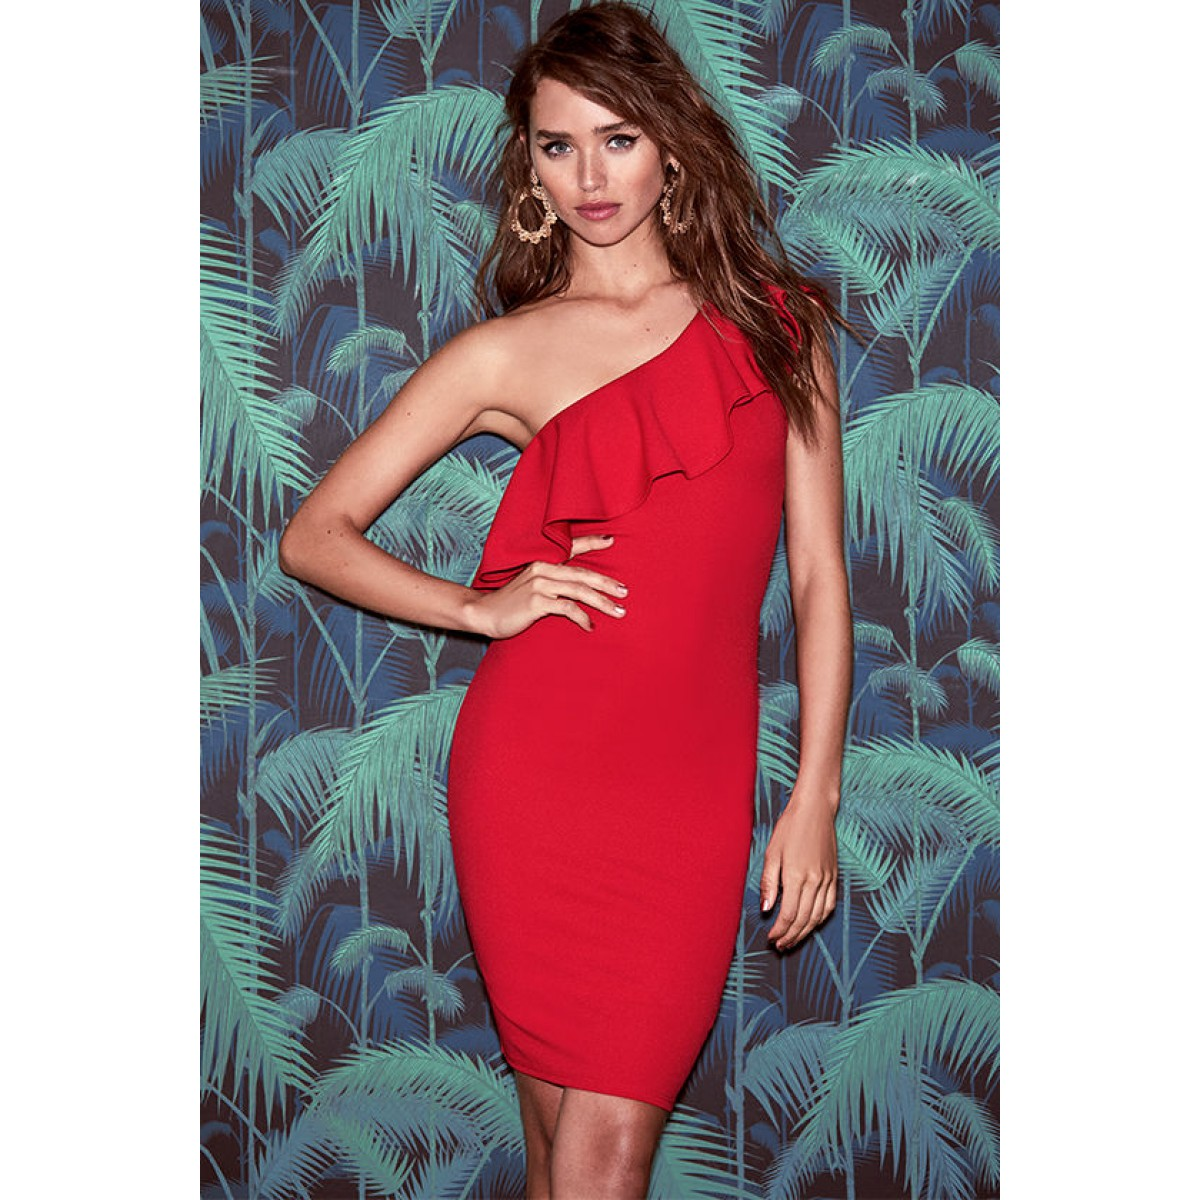 15a1fd4b543 Be the first to review this product.  46.00.  46.00Availability  In stock.  Life is But a Dream Red One-Shoulder Bodycon Dress